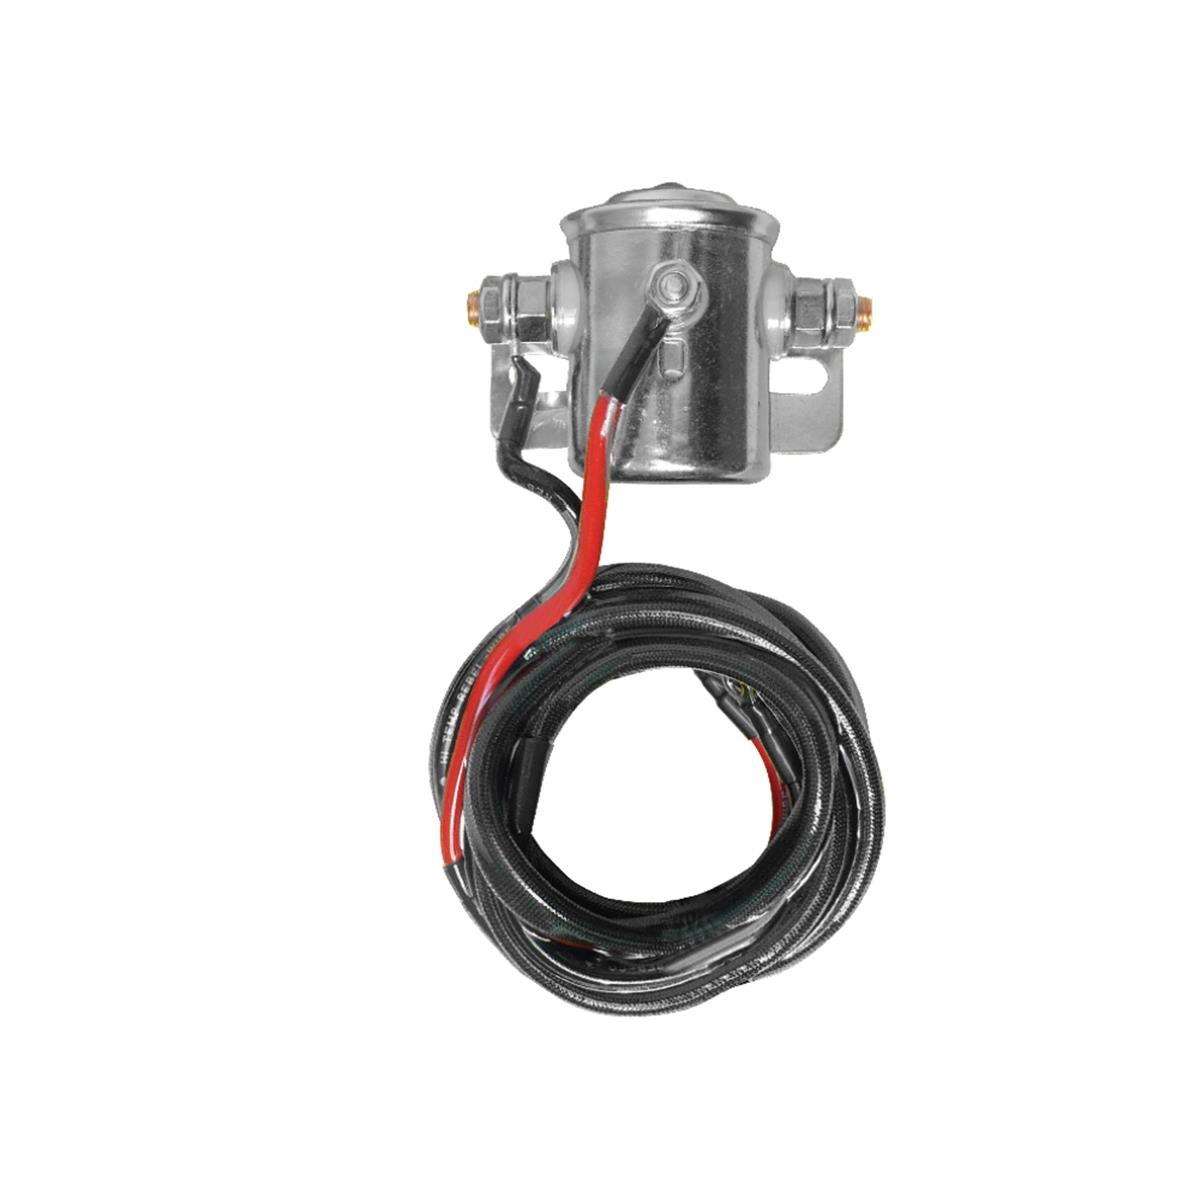 HD starter solenoid only